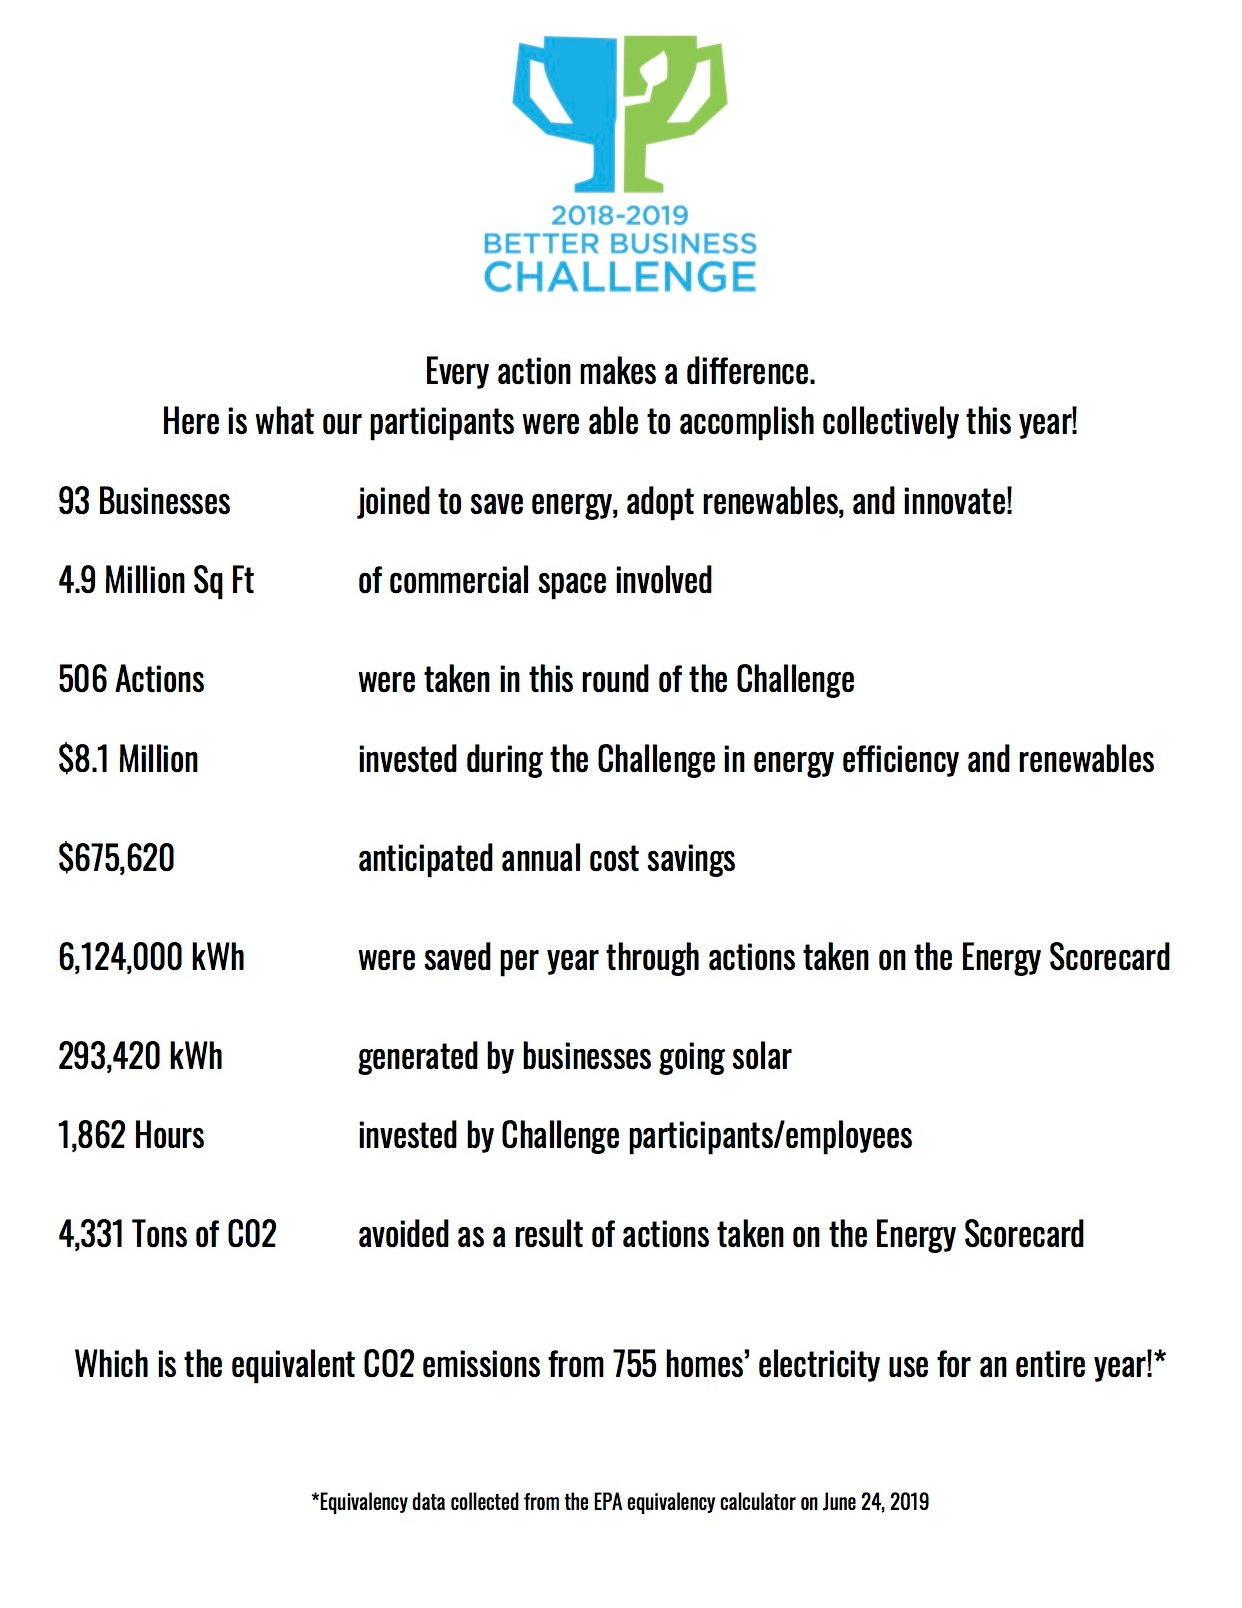 2019+Challenge+by+the+Numbers_final_v2.jpg